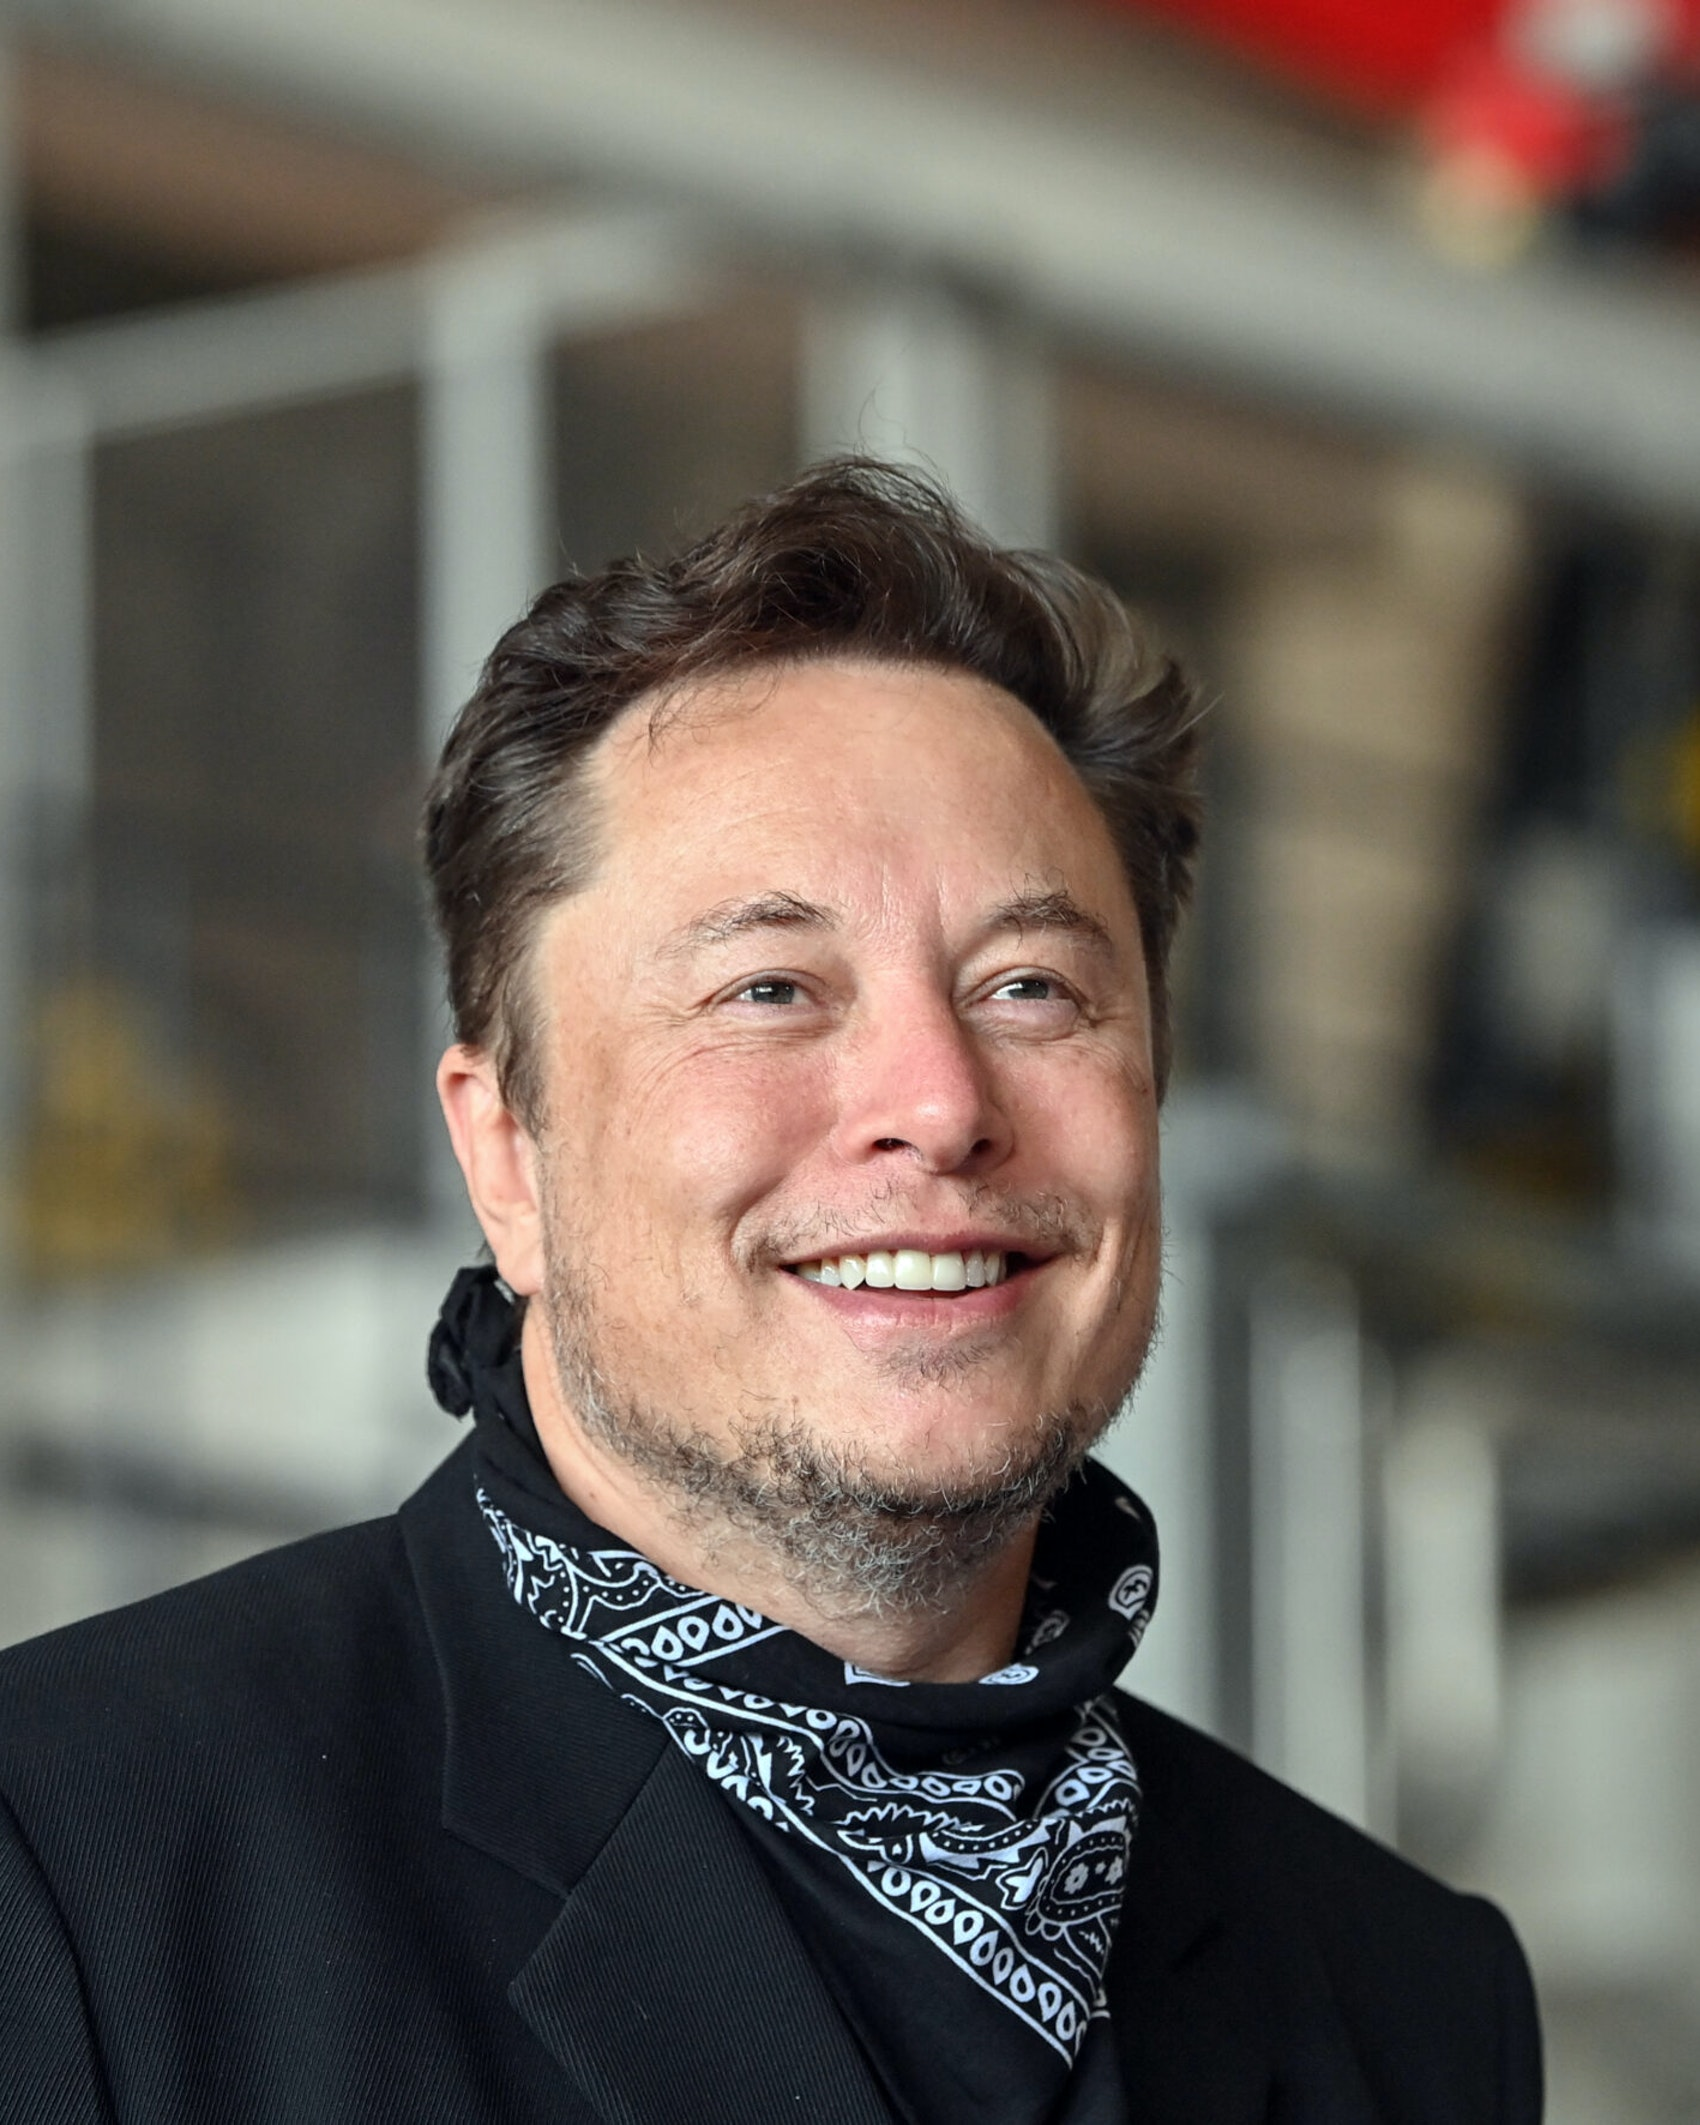 13 August 2021, Brandenburg, Grünheide: Elon Musk, Tesla CEO, stands in the foundry of the Tesla Gigafactory during a press event. The first vehicles are scheduled to roll off the production line in Grünheide near Berlin from the end of 2021. The US company plans to build around 500,000 units of the compact Model 3 and Model Y series here each year. Photo: Patrick Pleul/dpa-Zentralbild/ZB (Photo by Patrick Pleul/picture alliance via Getty Images)